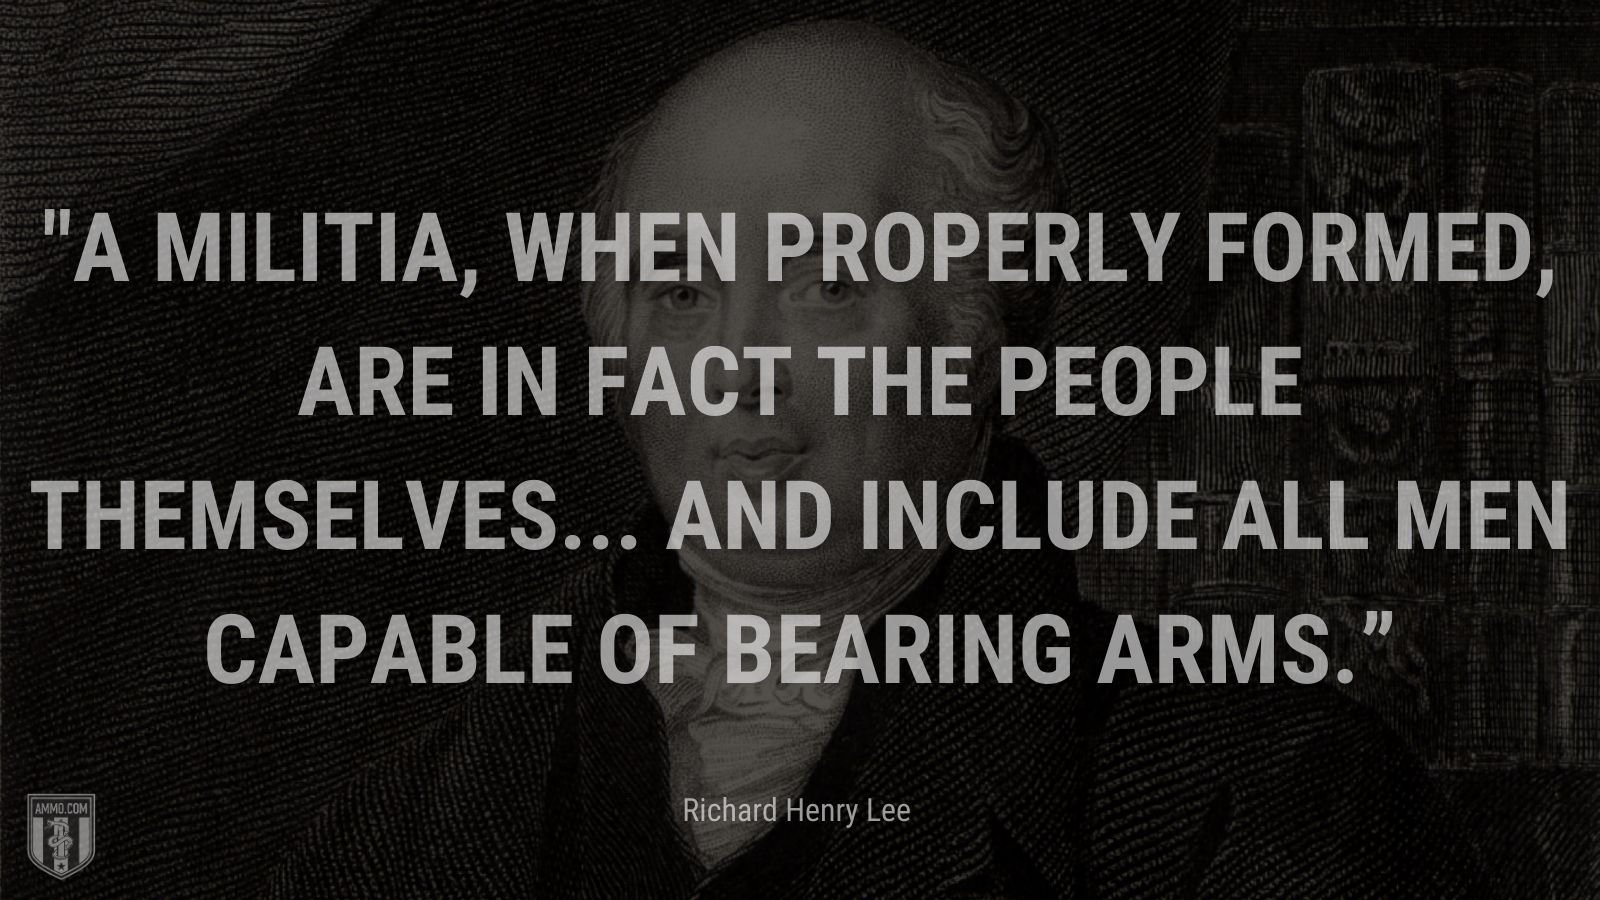 """""""A militia, when properly formed, are in fact the people themselves... and include all men capable of bearing arms."""" - Richard Henry Lee"""